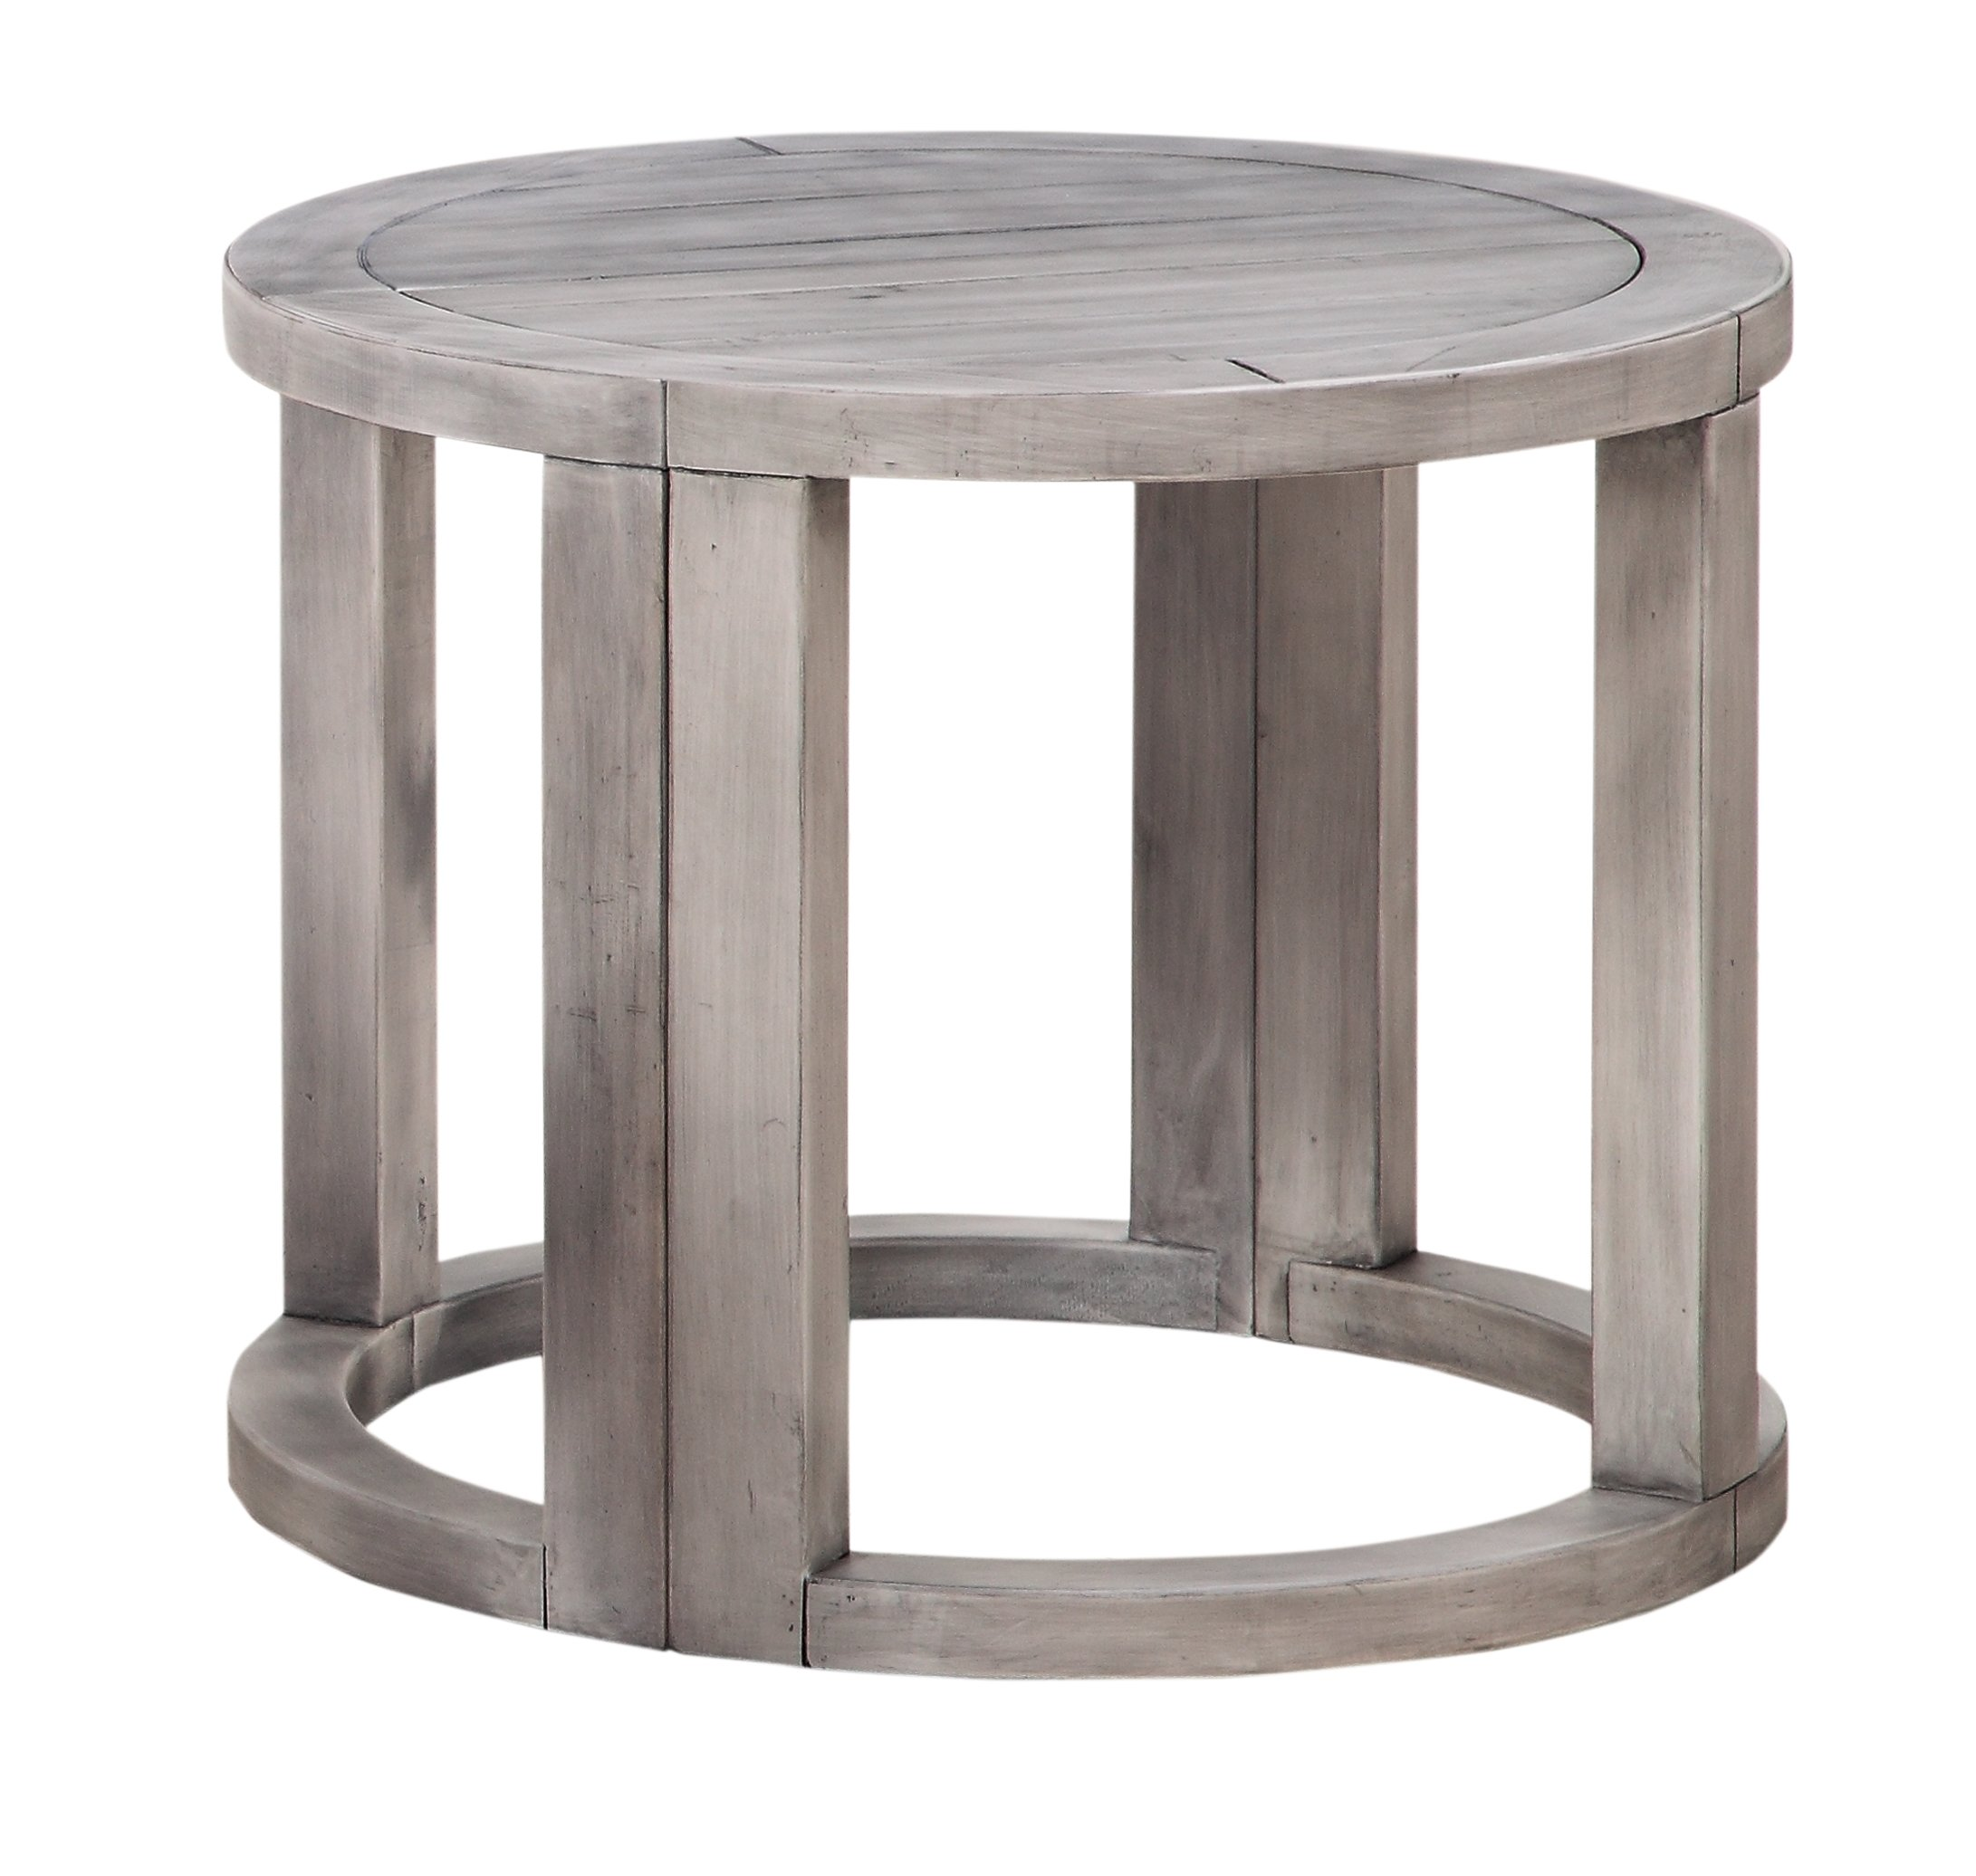 half moon accent table howze end set wooden display unique entryway furniture barn door dimensions target tables little outdoor rectangular coffee cover black wrought iron coastal